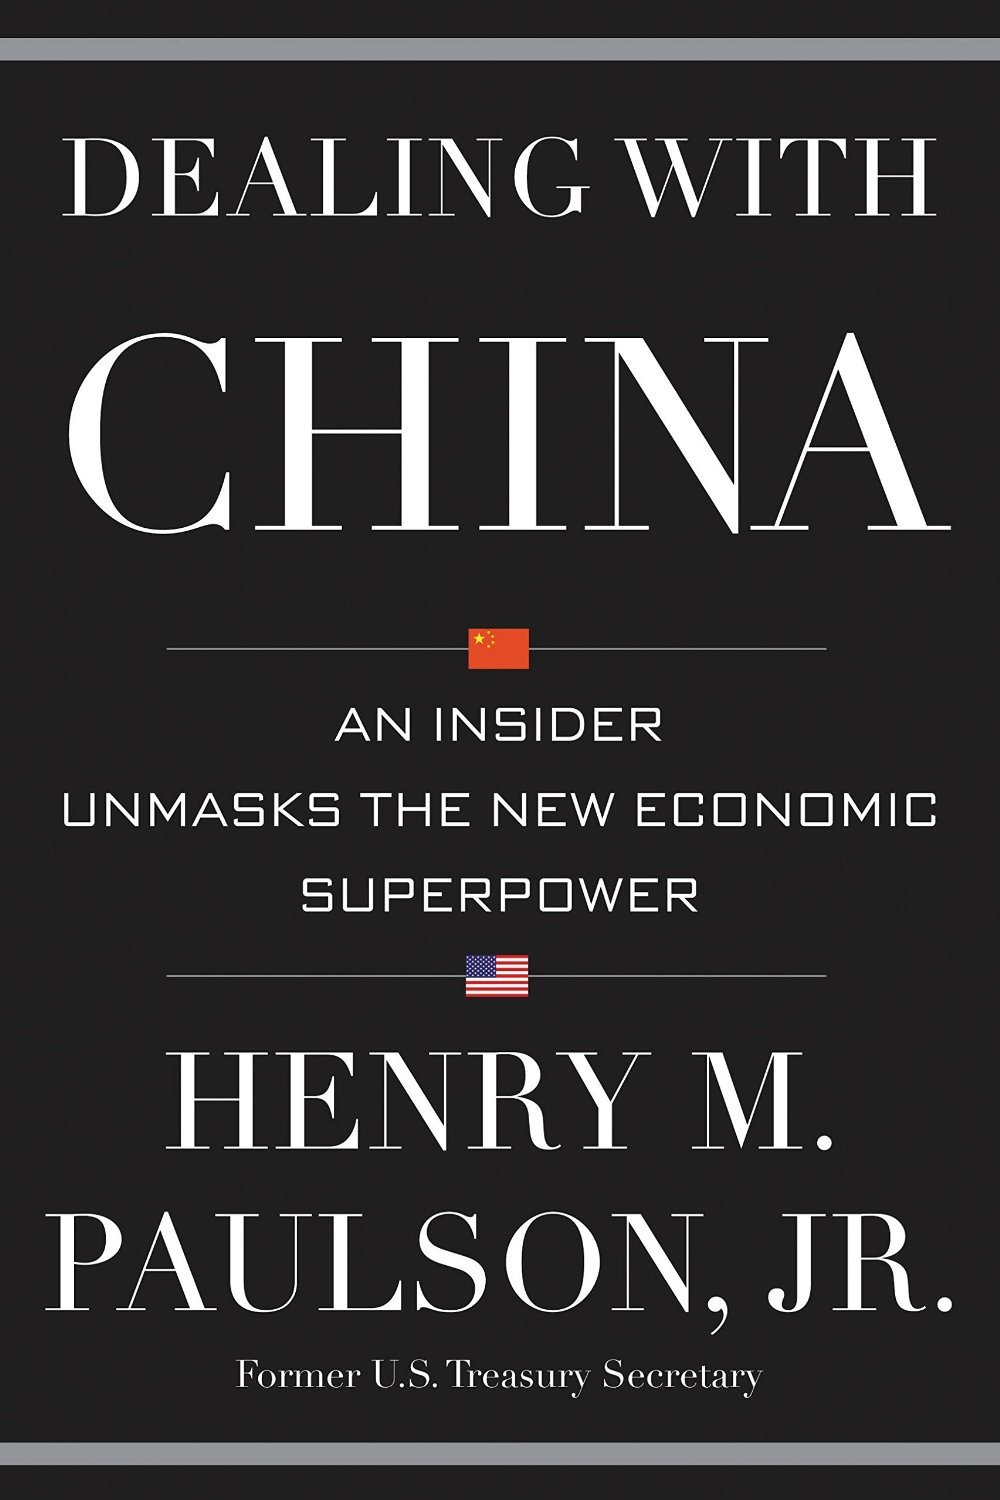 Dealing with china by henry m paulson jr